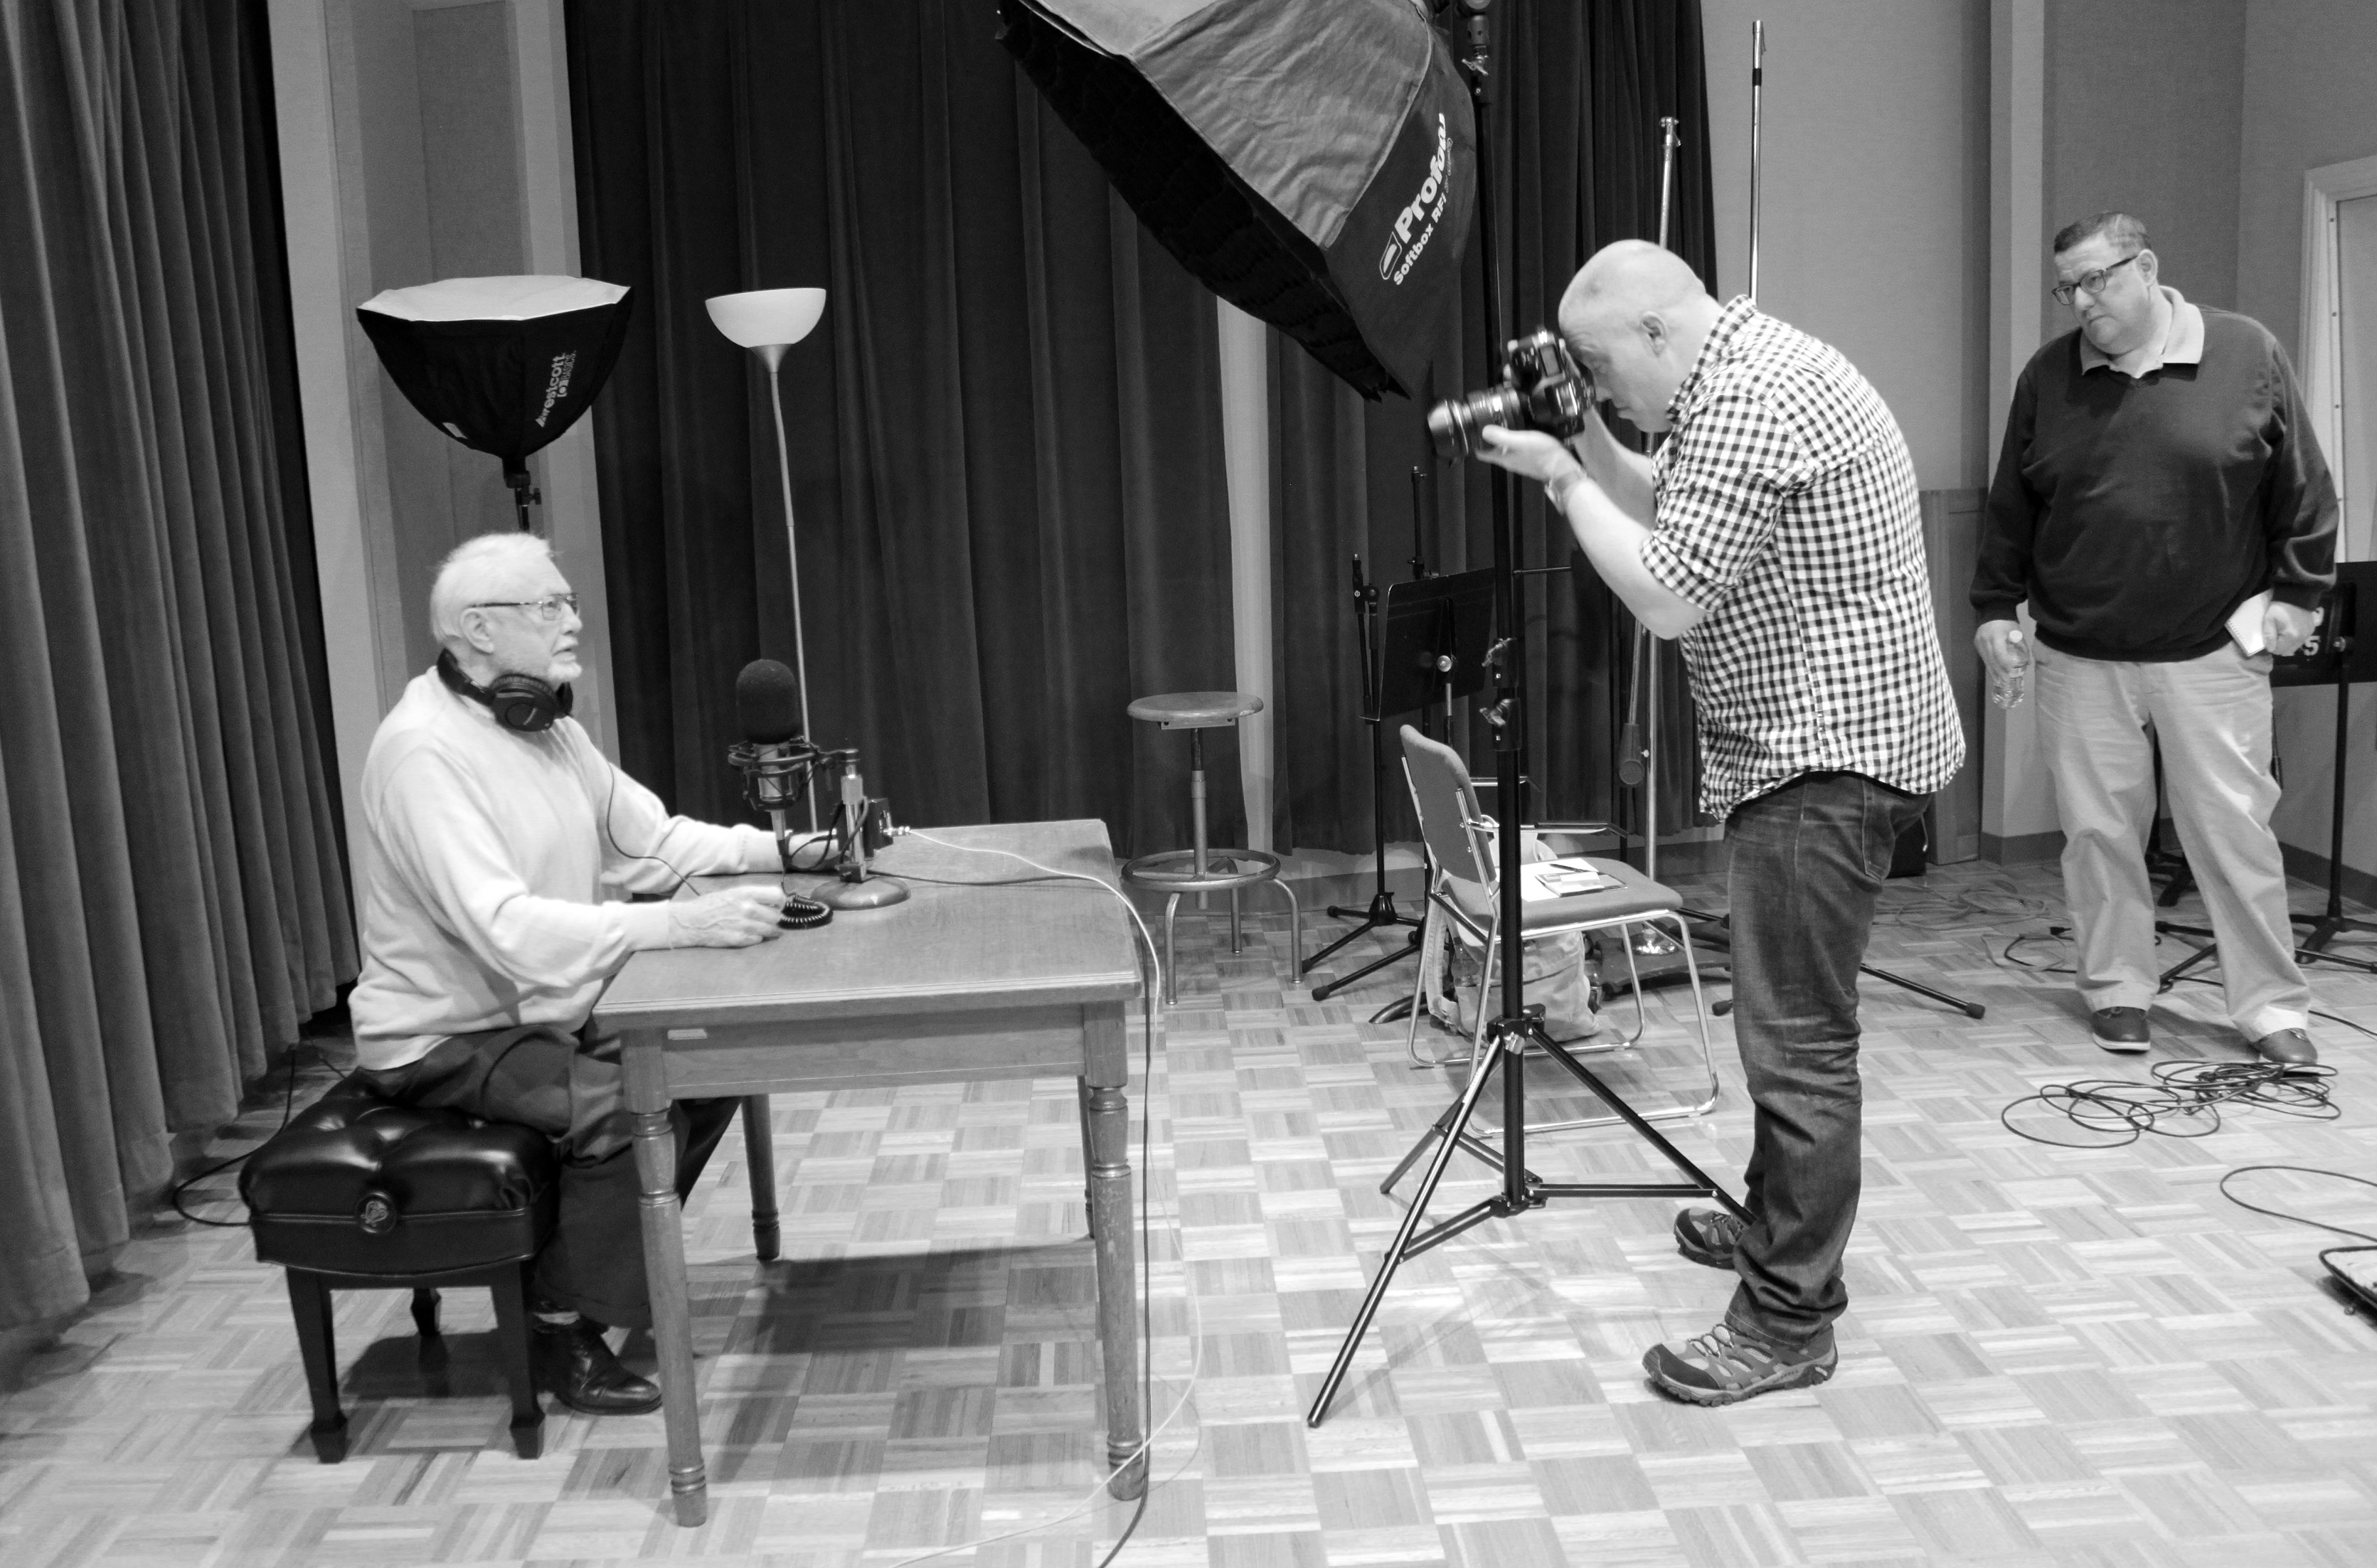 While in the KPR studios for an interview, Dr. Potts was photographed for a KU Alumni Magazine feature scheduled for the March 15, 2015, issue. (Photo by Joanna Fewins)